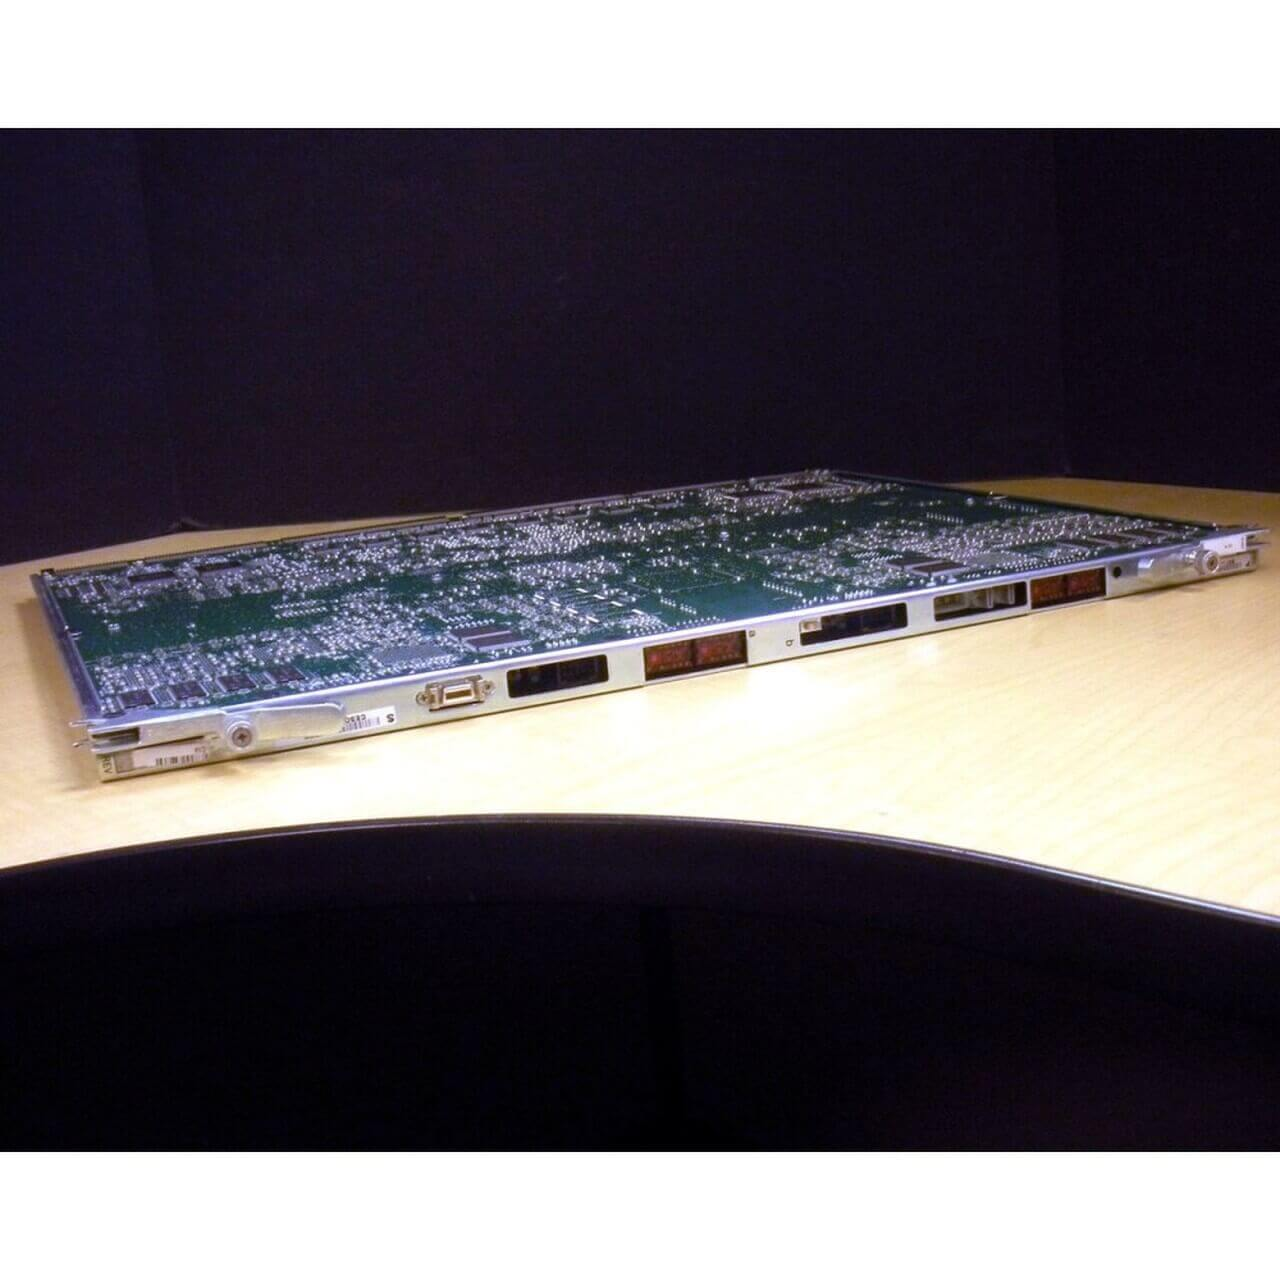 Buy & save on refurbished EMC adapters for computer servers from your trusted partners at Flagship Technologies.